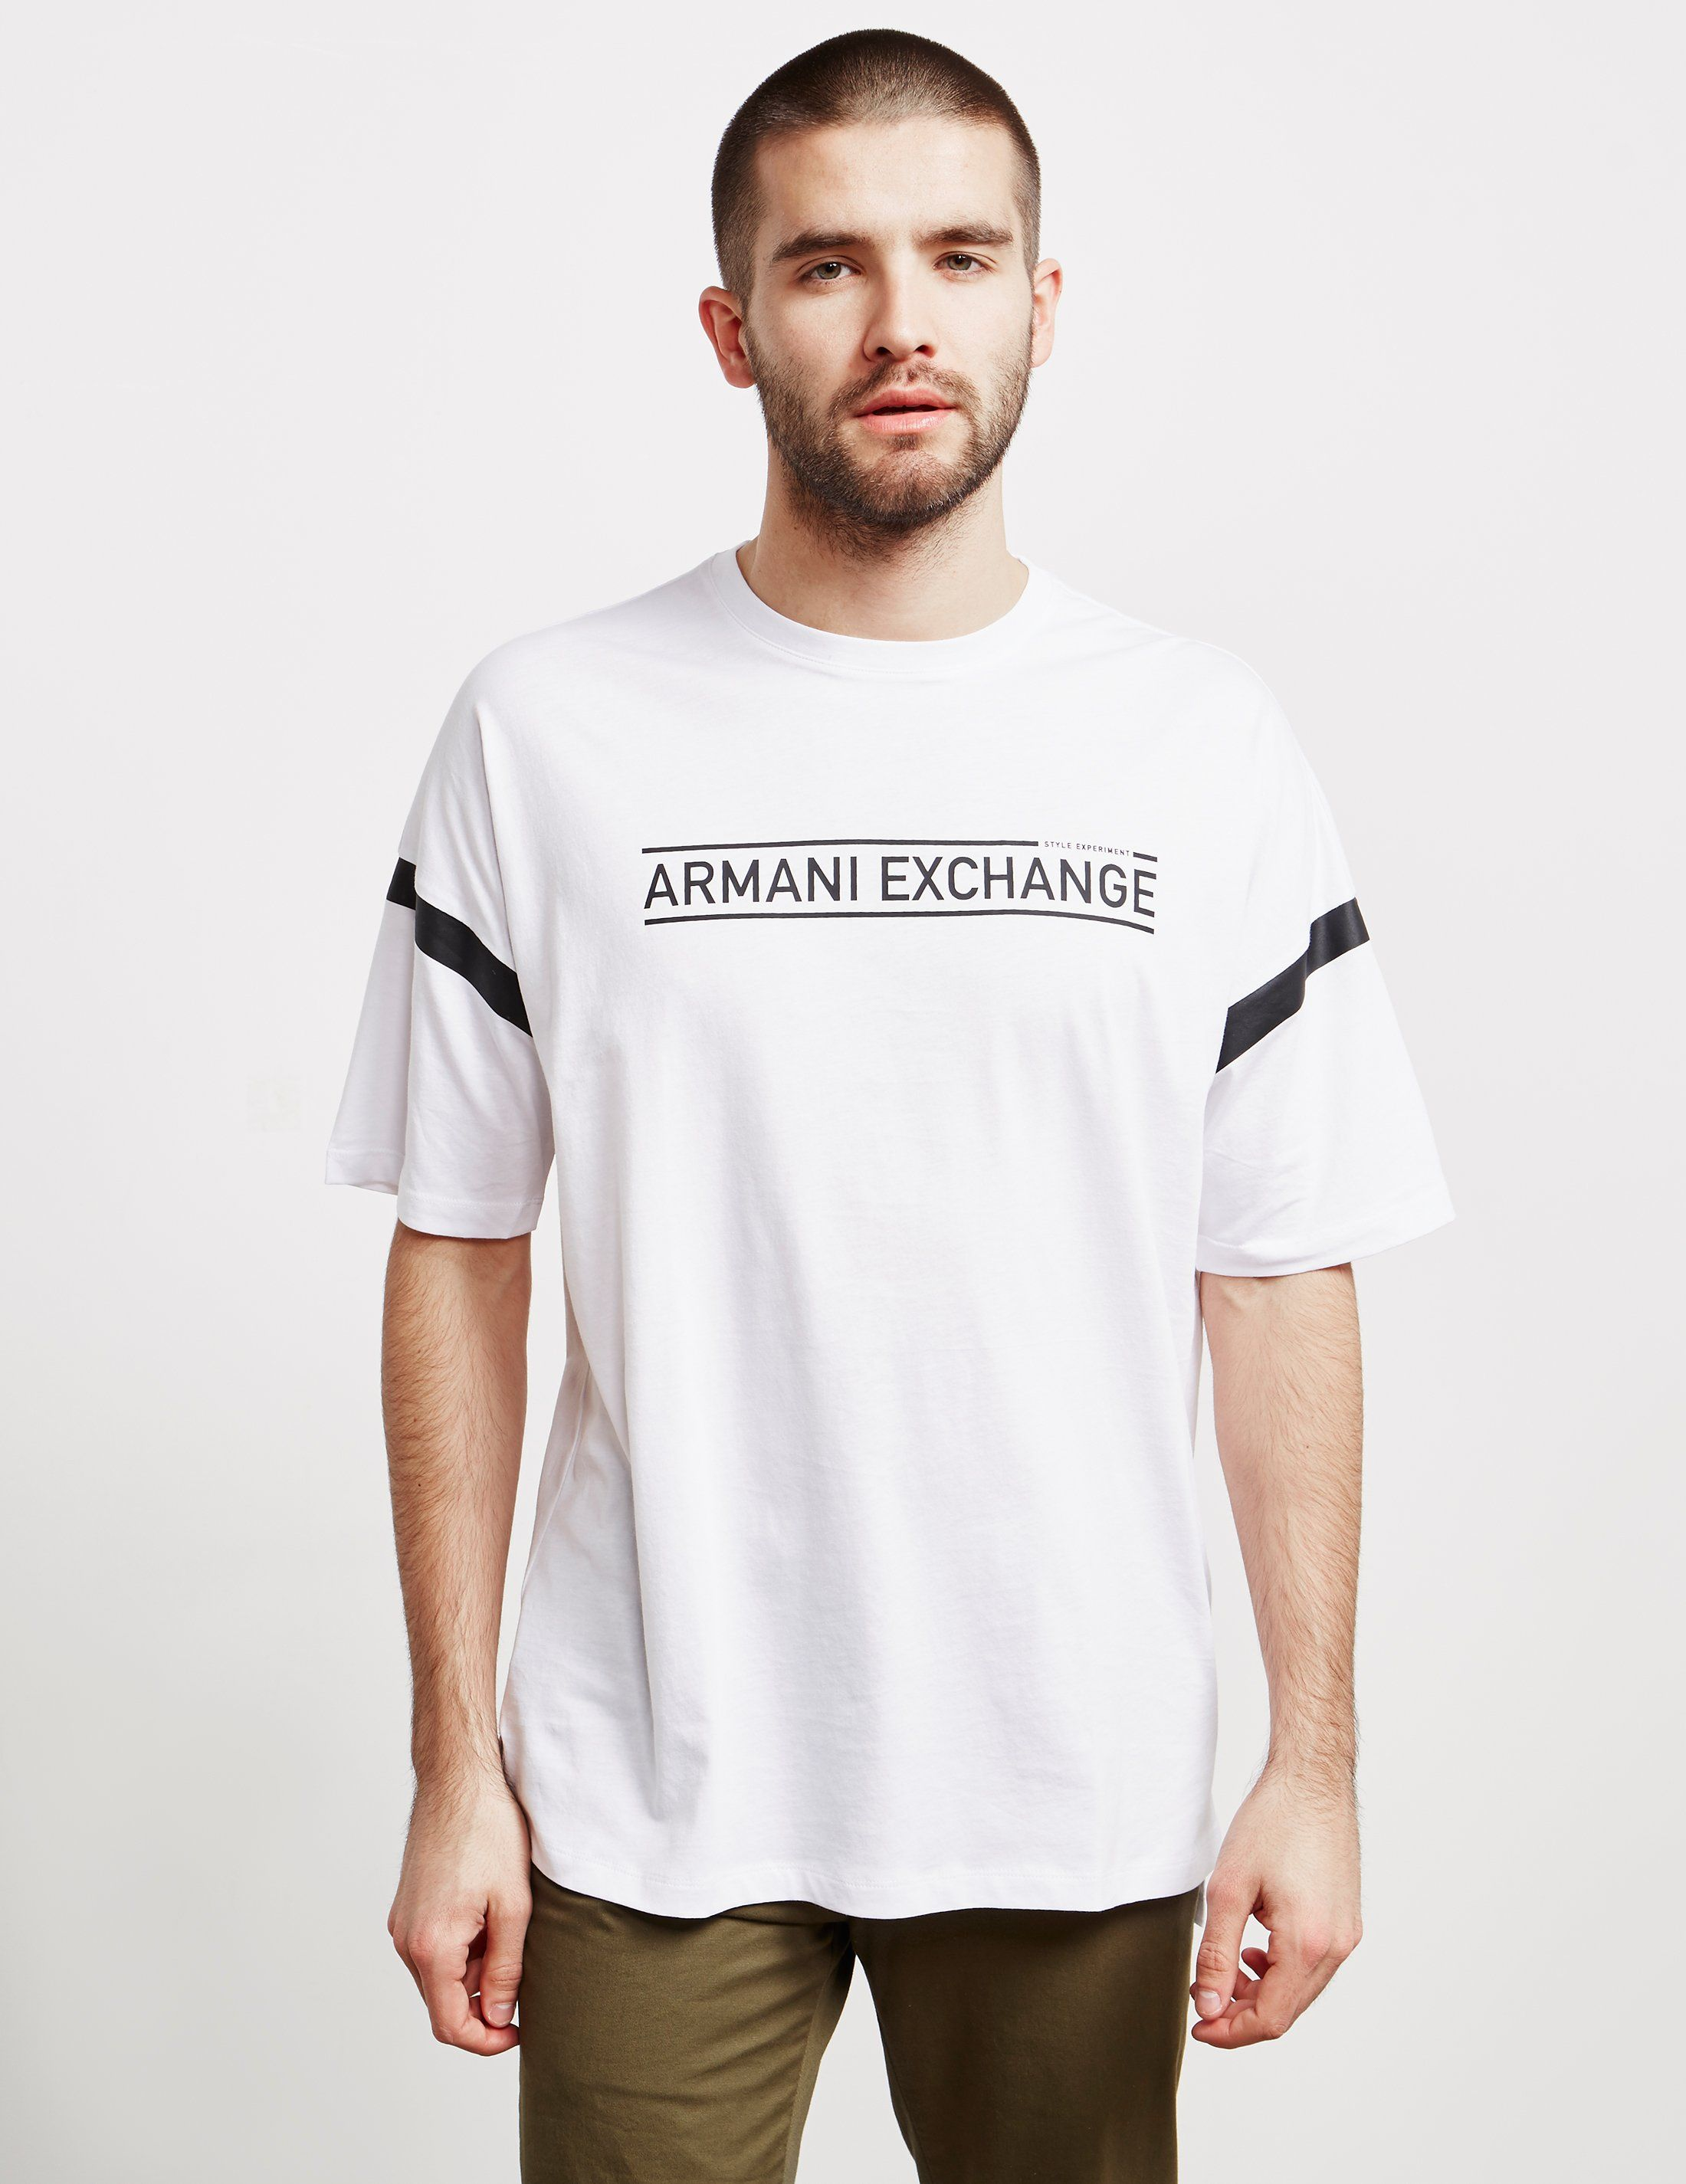 Armani Exchange Stripe Short Sleeve T-Shirt - Online Exclusive